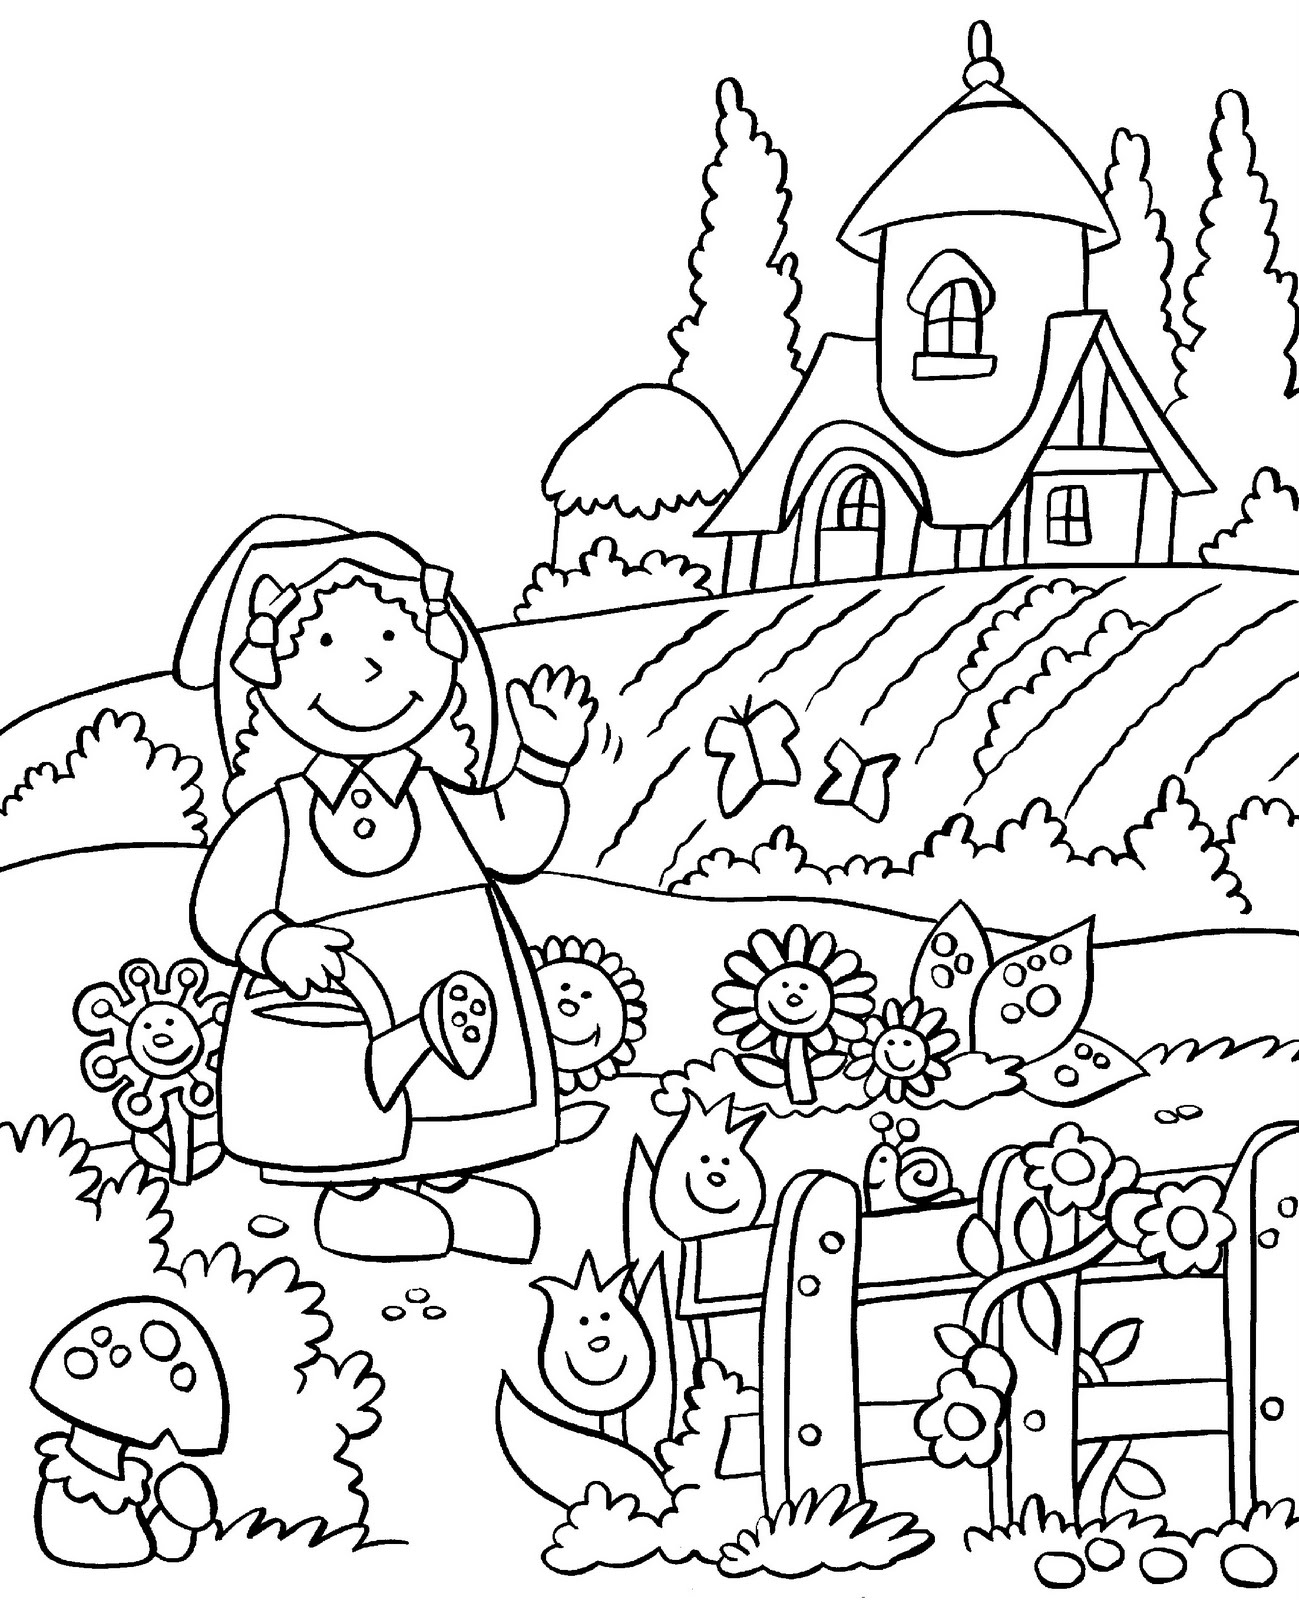 Vegetable garden kids drawing - Flower Garden Coloring Pages